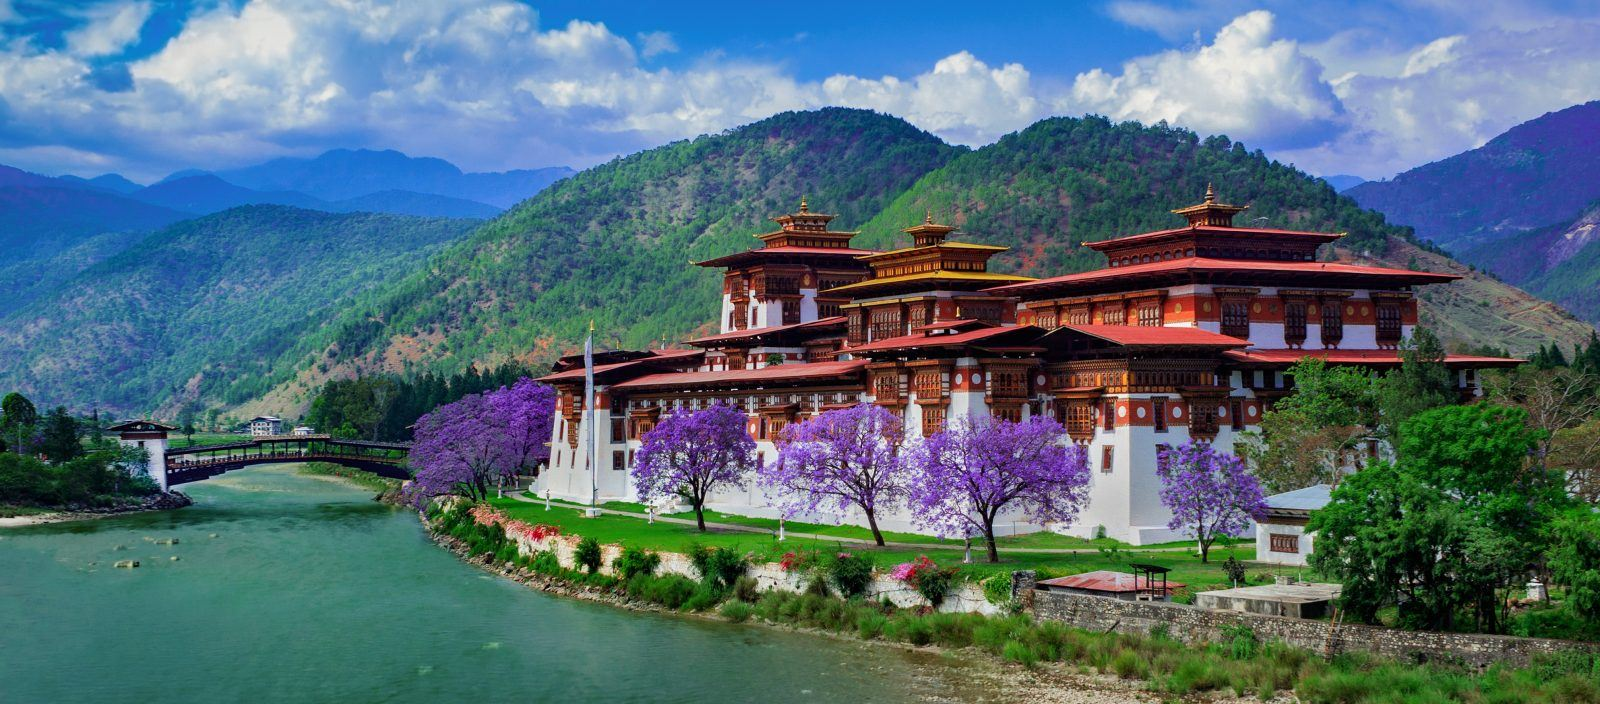 Bhutan: Kingdom in the Clouds